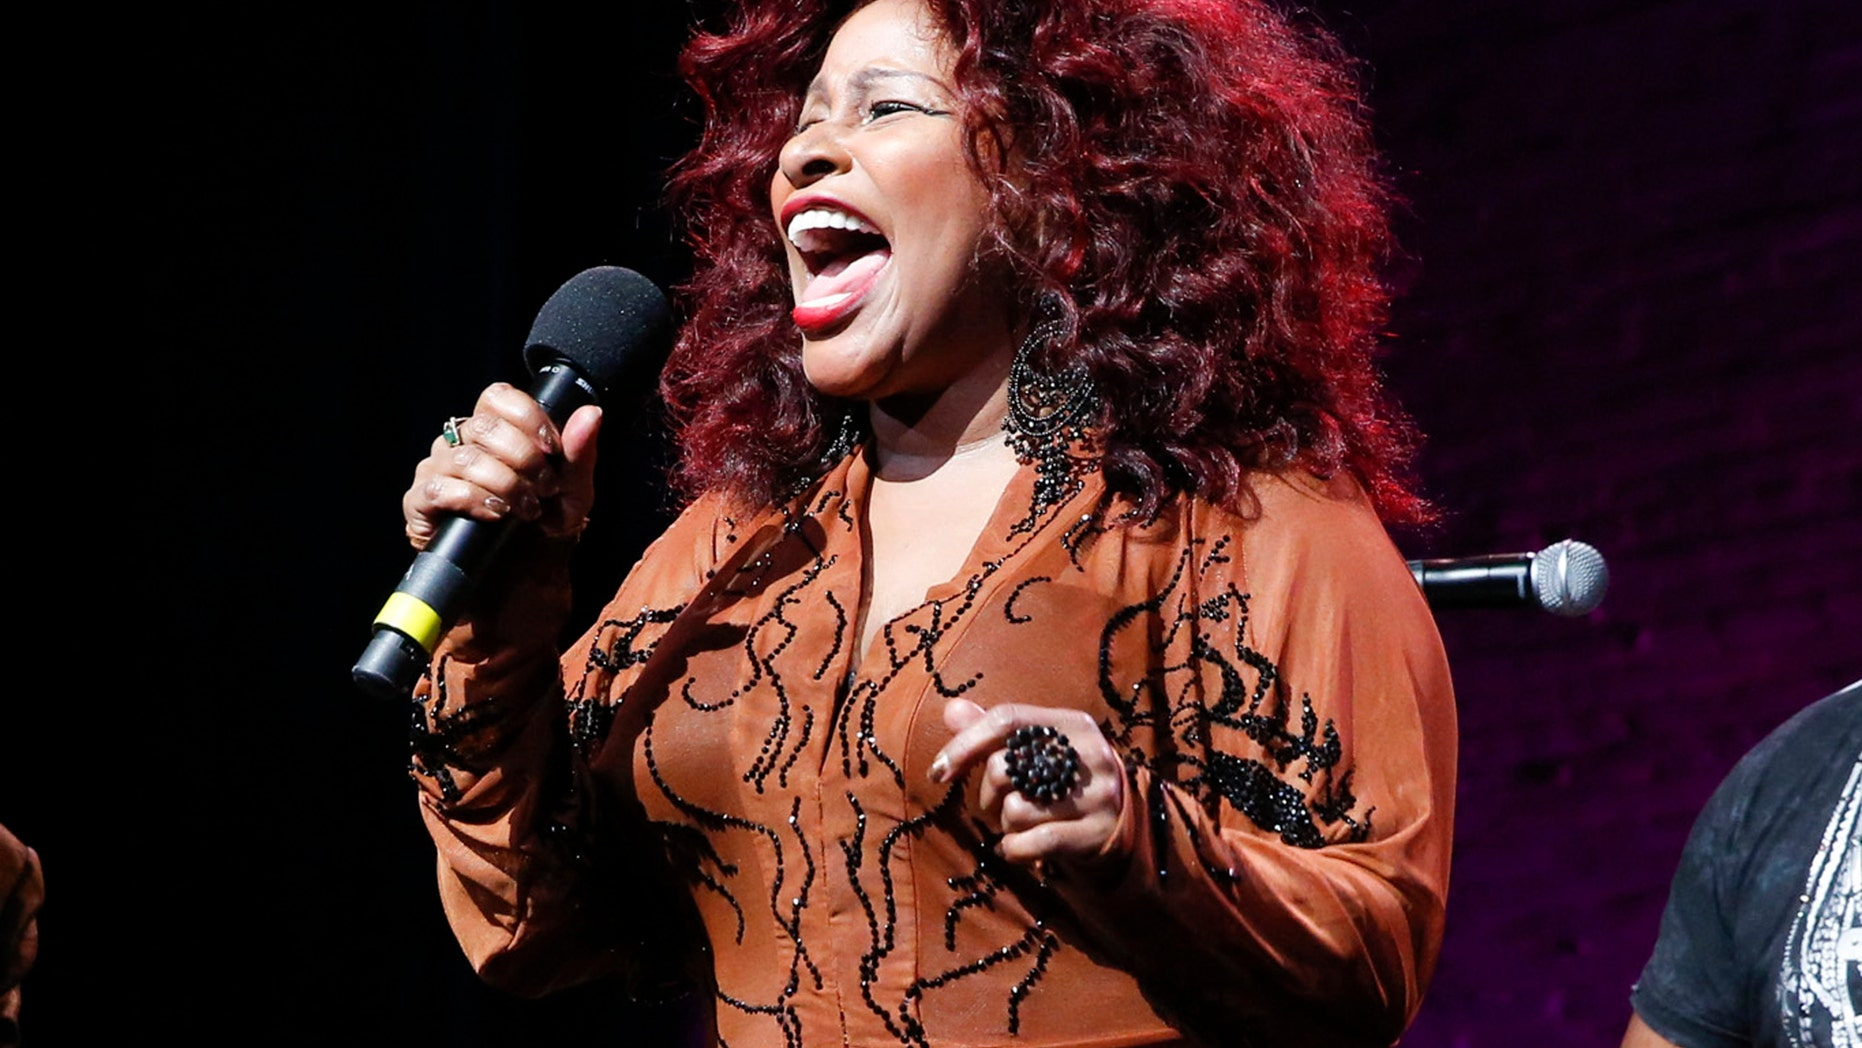 """FILE - In this Oct. 24, 2014, file photo, Chaka Khan performs at the 13th annual """"A Great Night in Harlem"""" gala concert in New York. Chaka Khan and her sister have both entered a drug rehabilitation program to battle their addiction to prescription drugs. In a statement released, Sunday, July 10, 2016, Khan said she has been battling with an addiction to he same medication that led to Prince's death last April. (Photo by Mark Von Holden/Invision/AP, File)"""